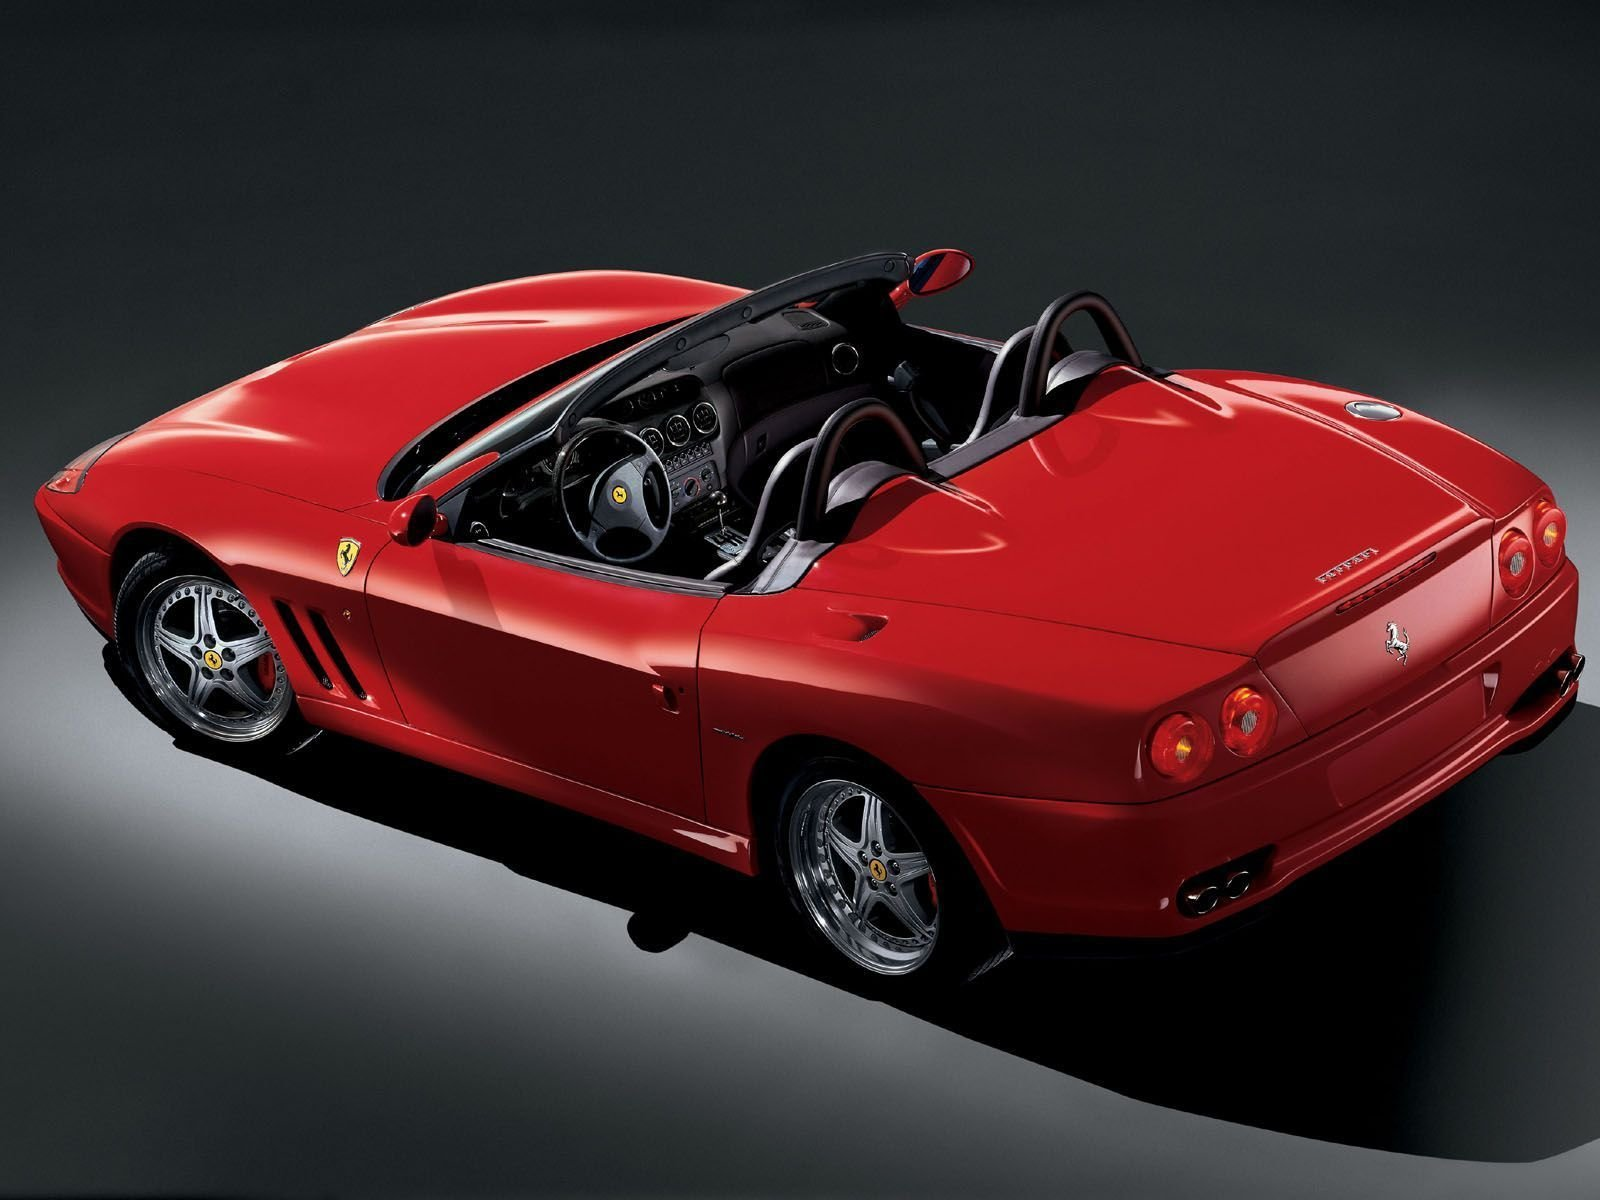 1996 2001 ferrari 550 maranello picture 32256 car. Black Bedroom Furniture Sets. Home Design Ideas